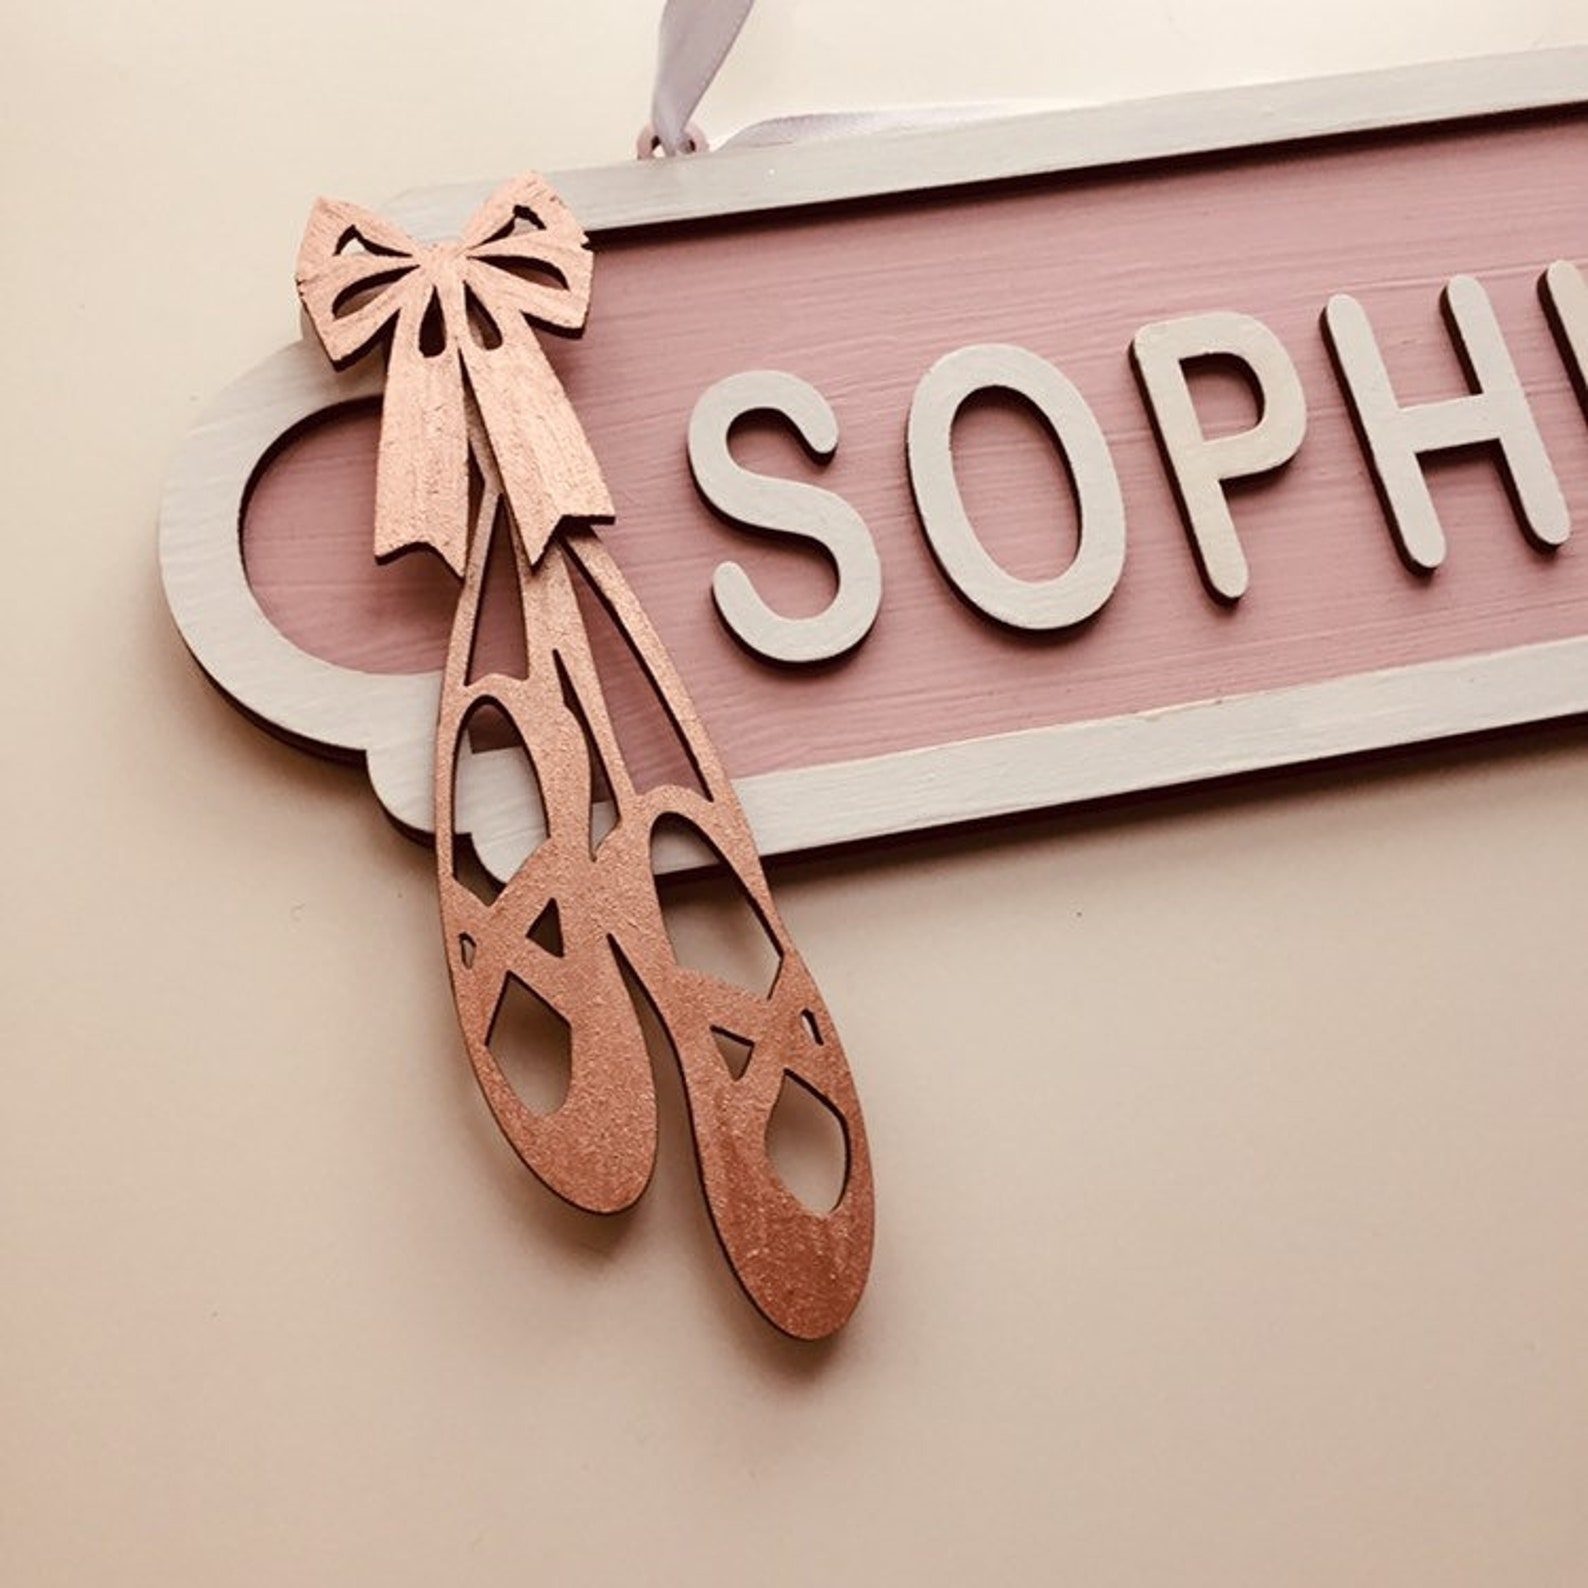 ballet street sign, girls birthday gift, rose gold sign, personalised wooden plaque, new baby present, rosegold decor